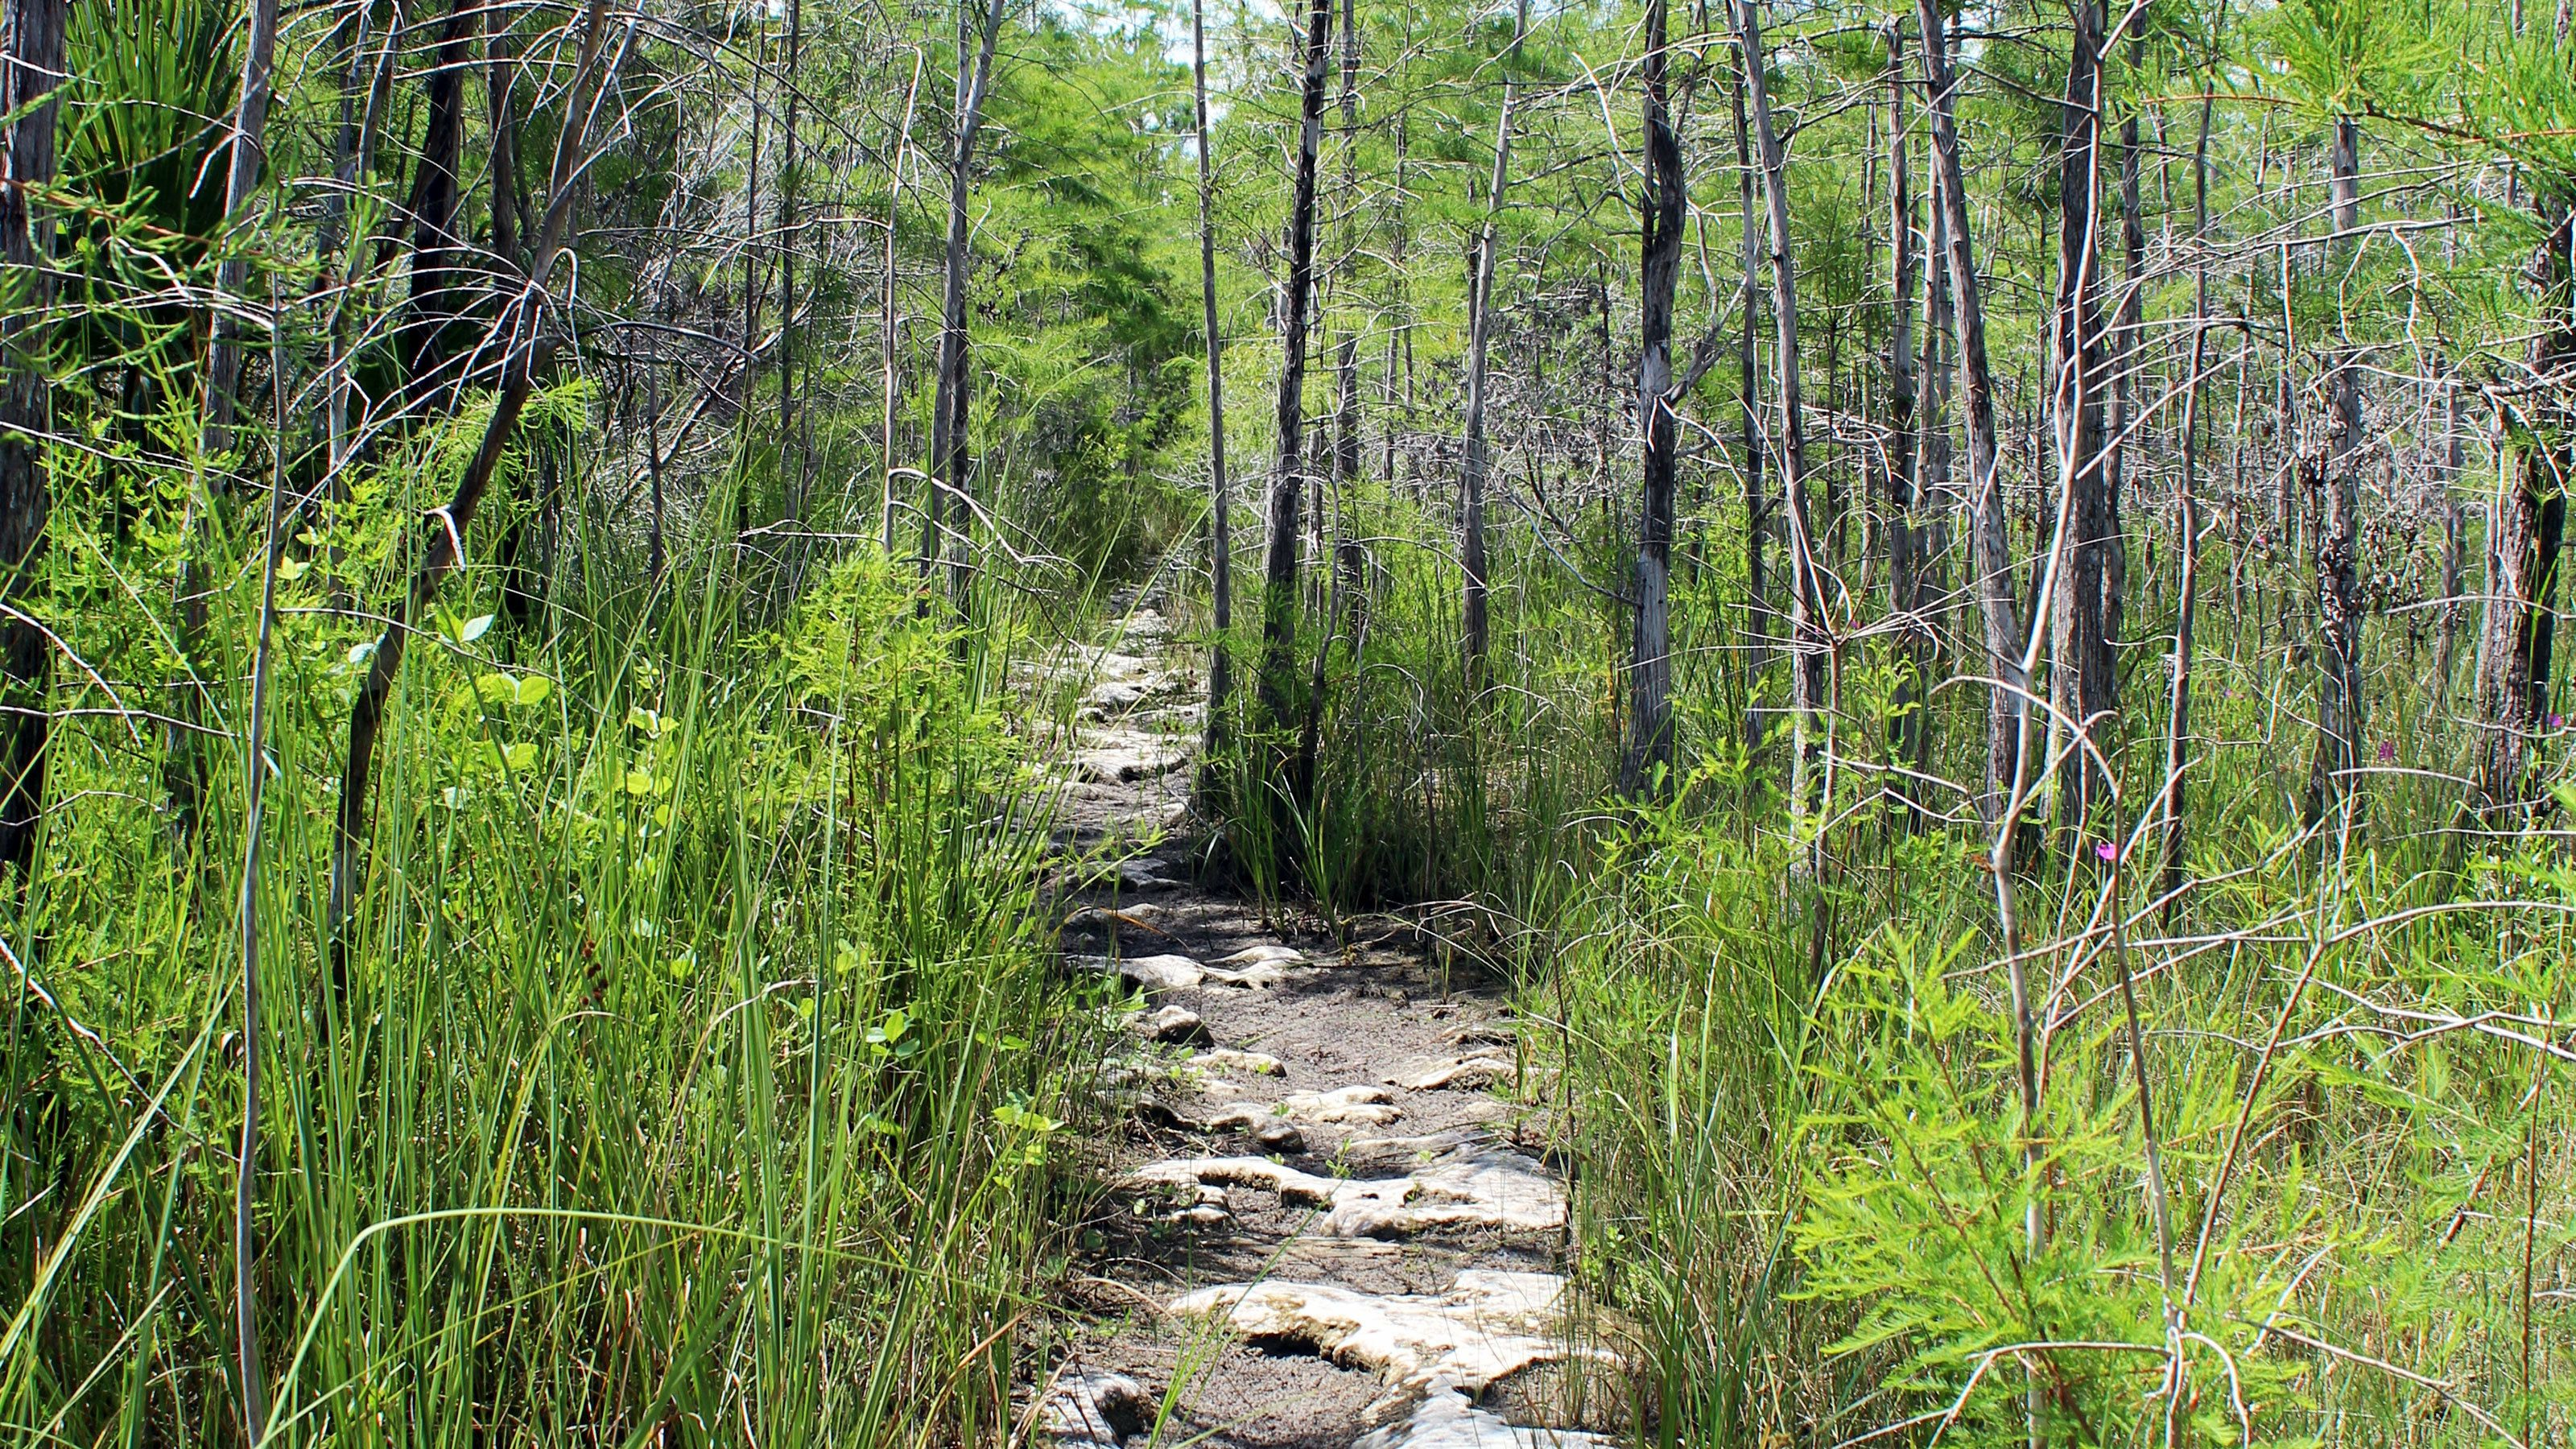 Foot pathway through trees in Everglades